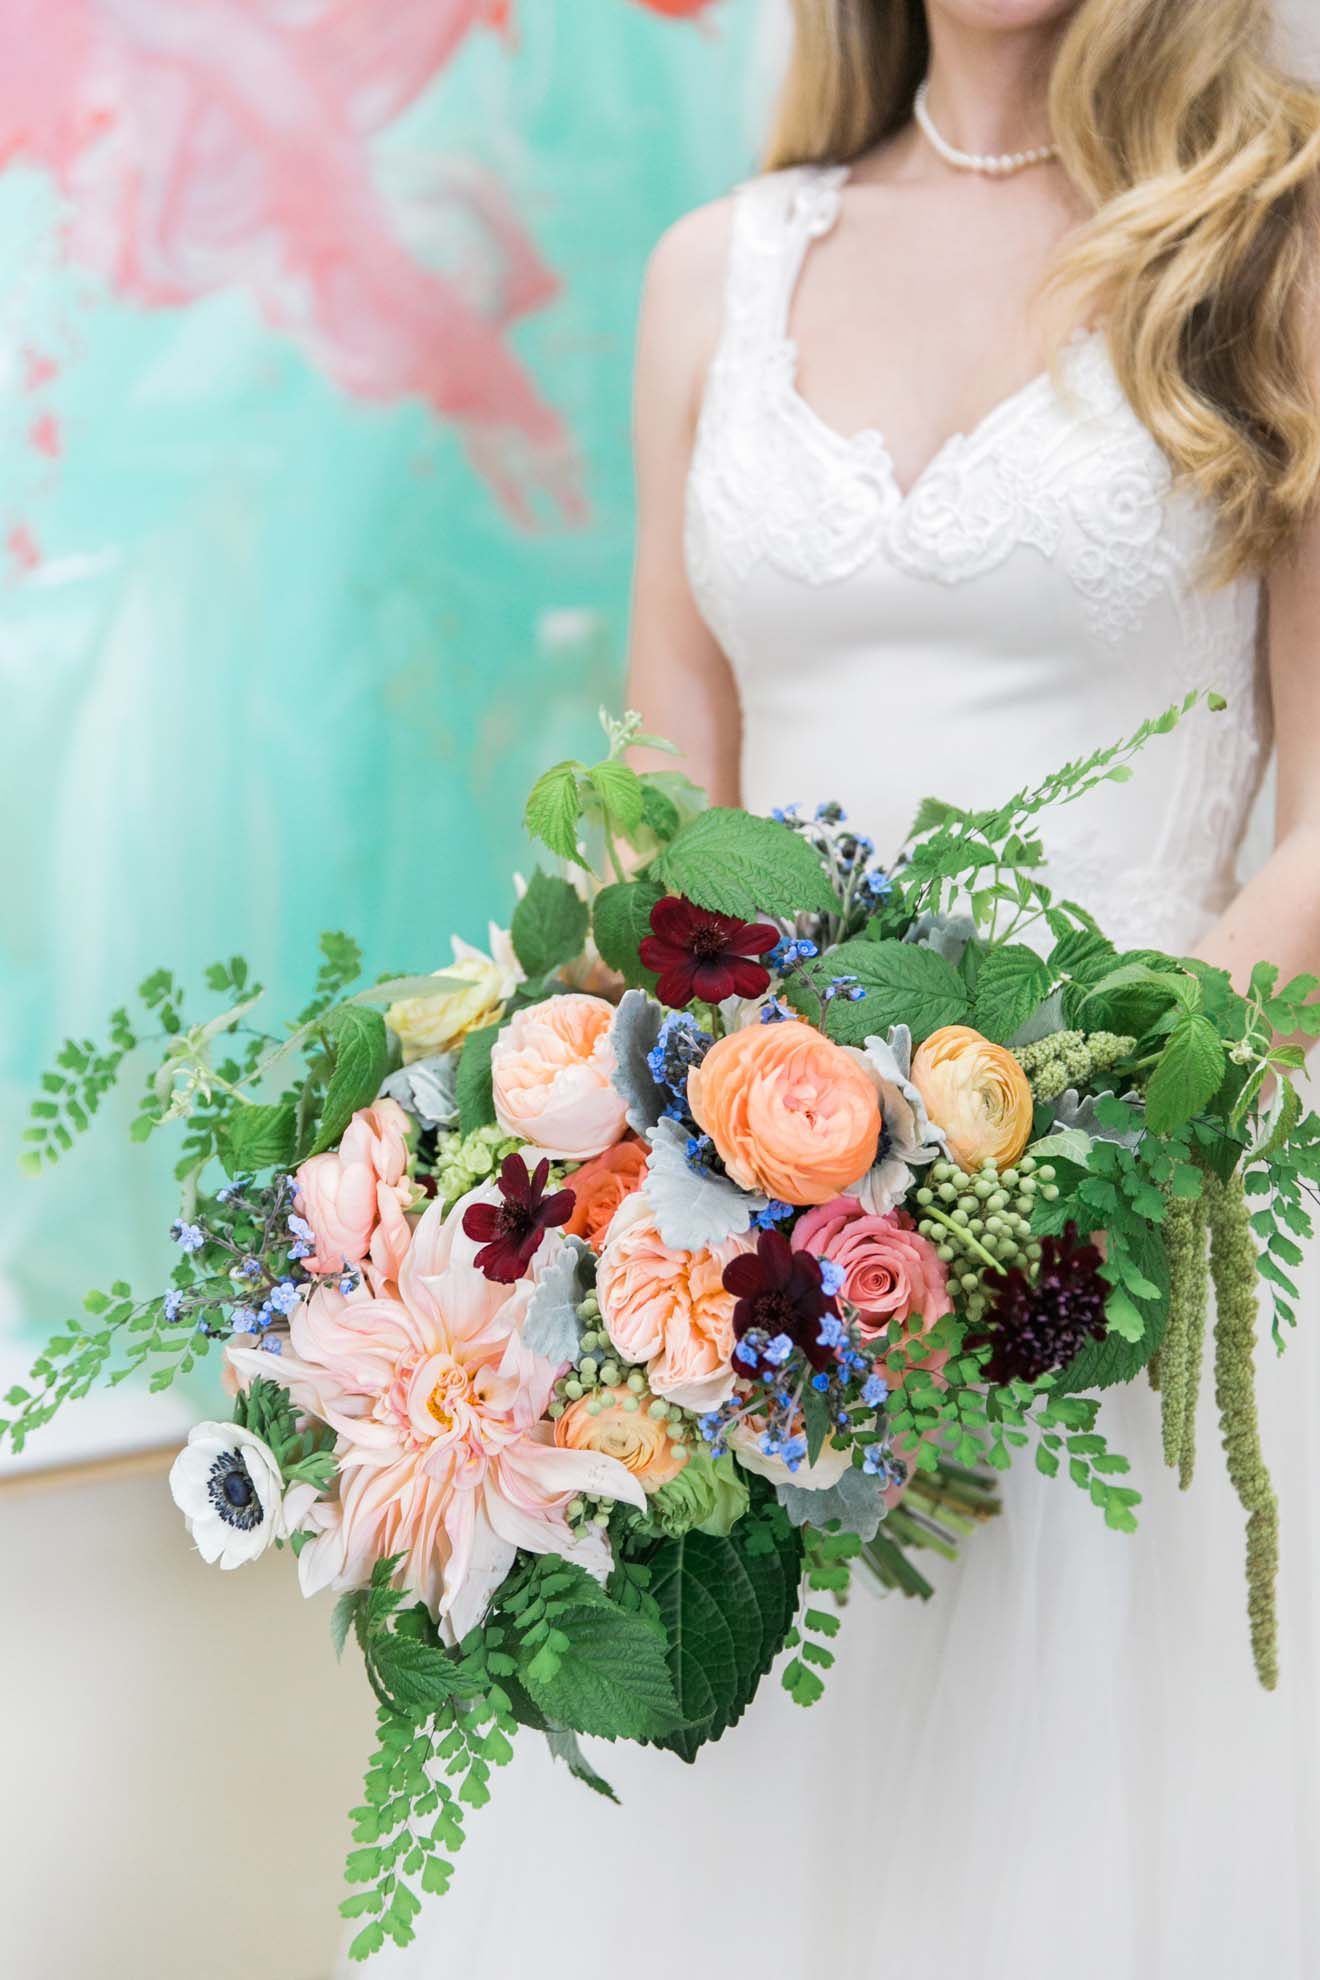 Bridal bouquet of orange roses, Juliet garden roses, cafe au lait dahlias, chocolate cosmos, anemones, raspberry foliage, green amaranthus, Maidenhair fern - designed by Flora Nova Design for a Pacific Northwest Wedding